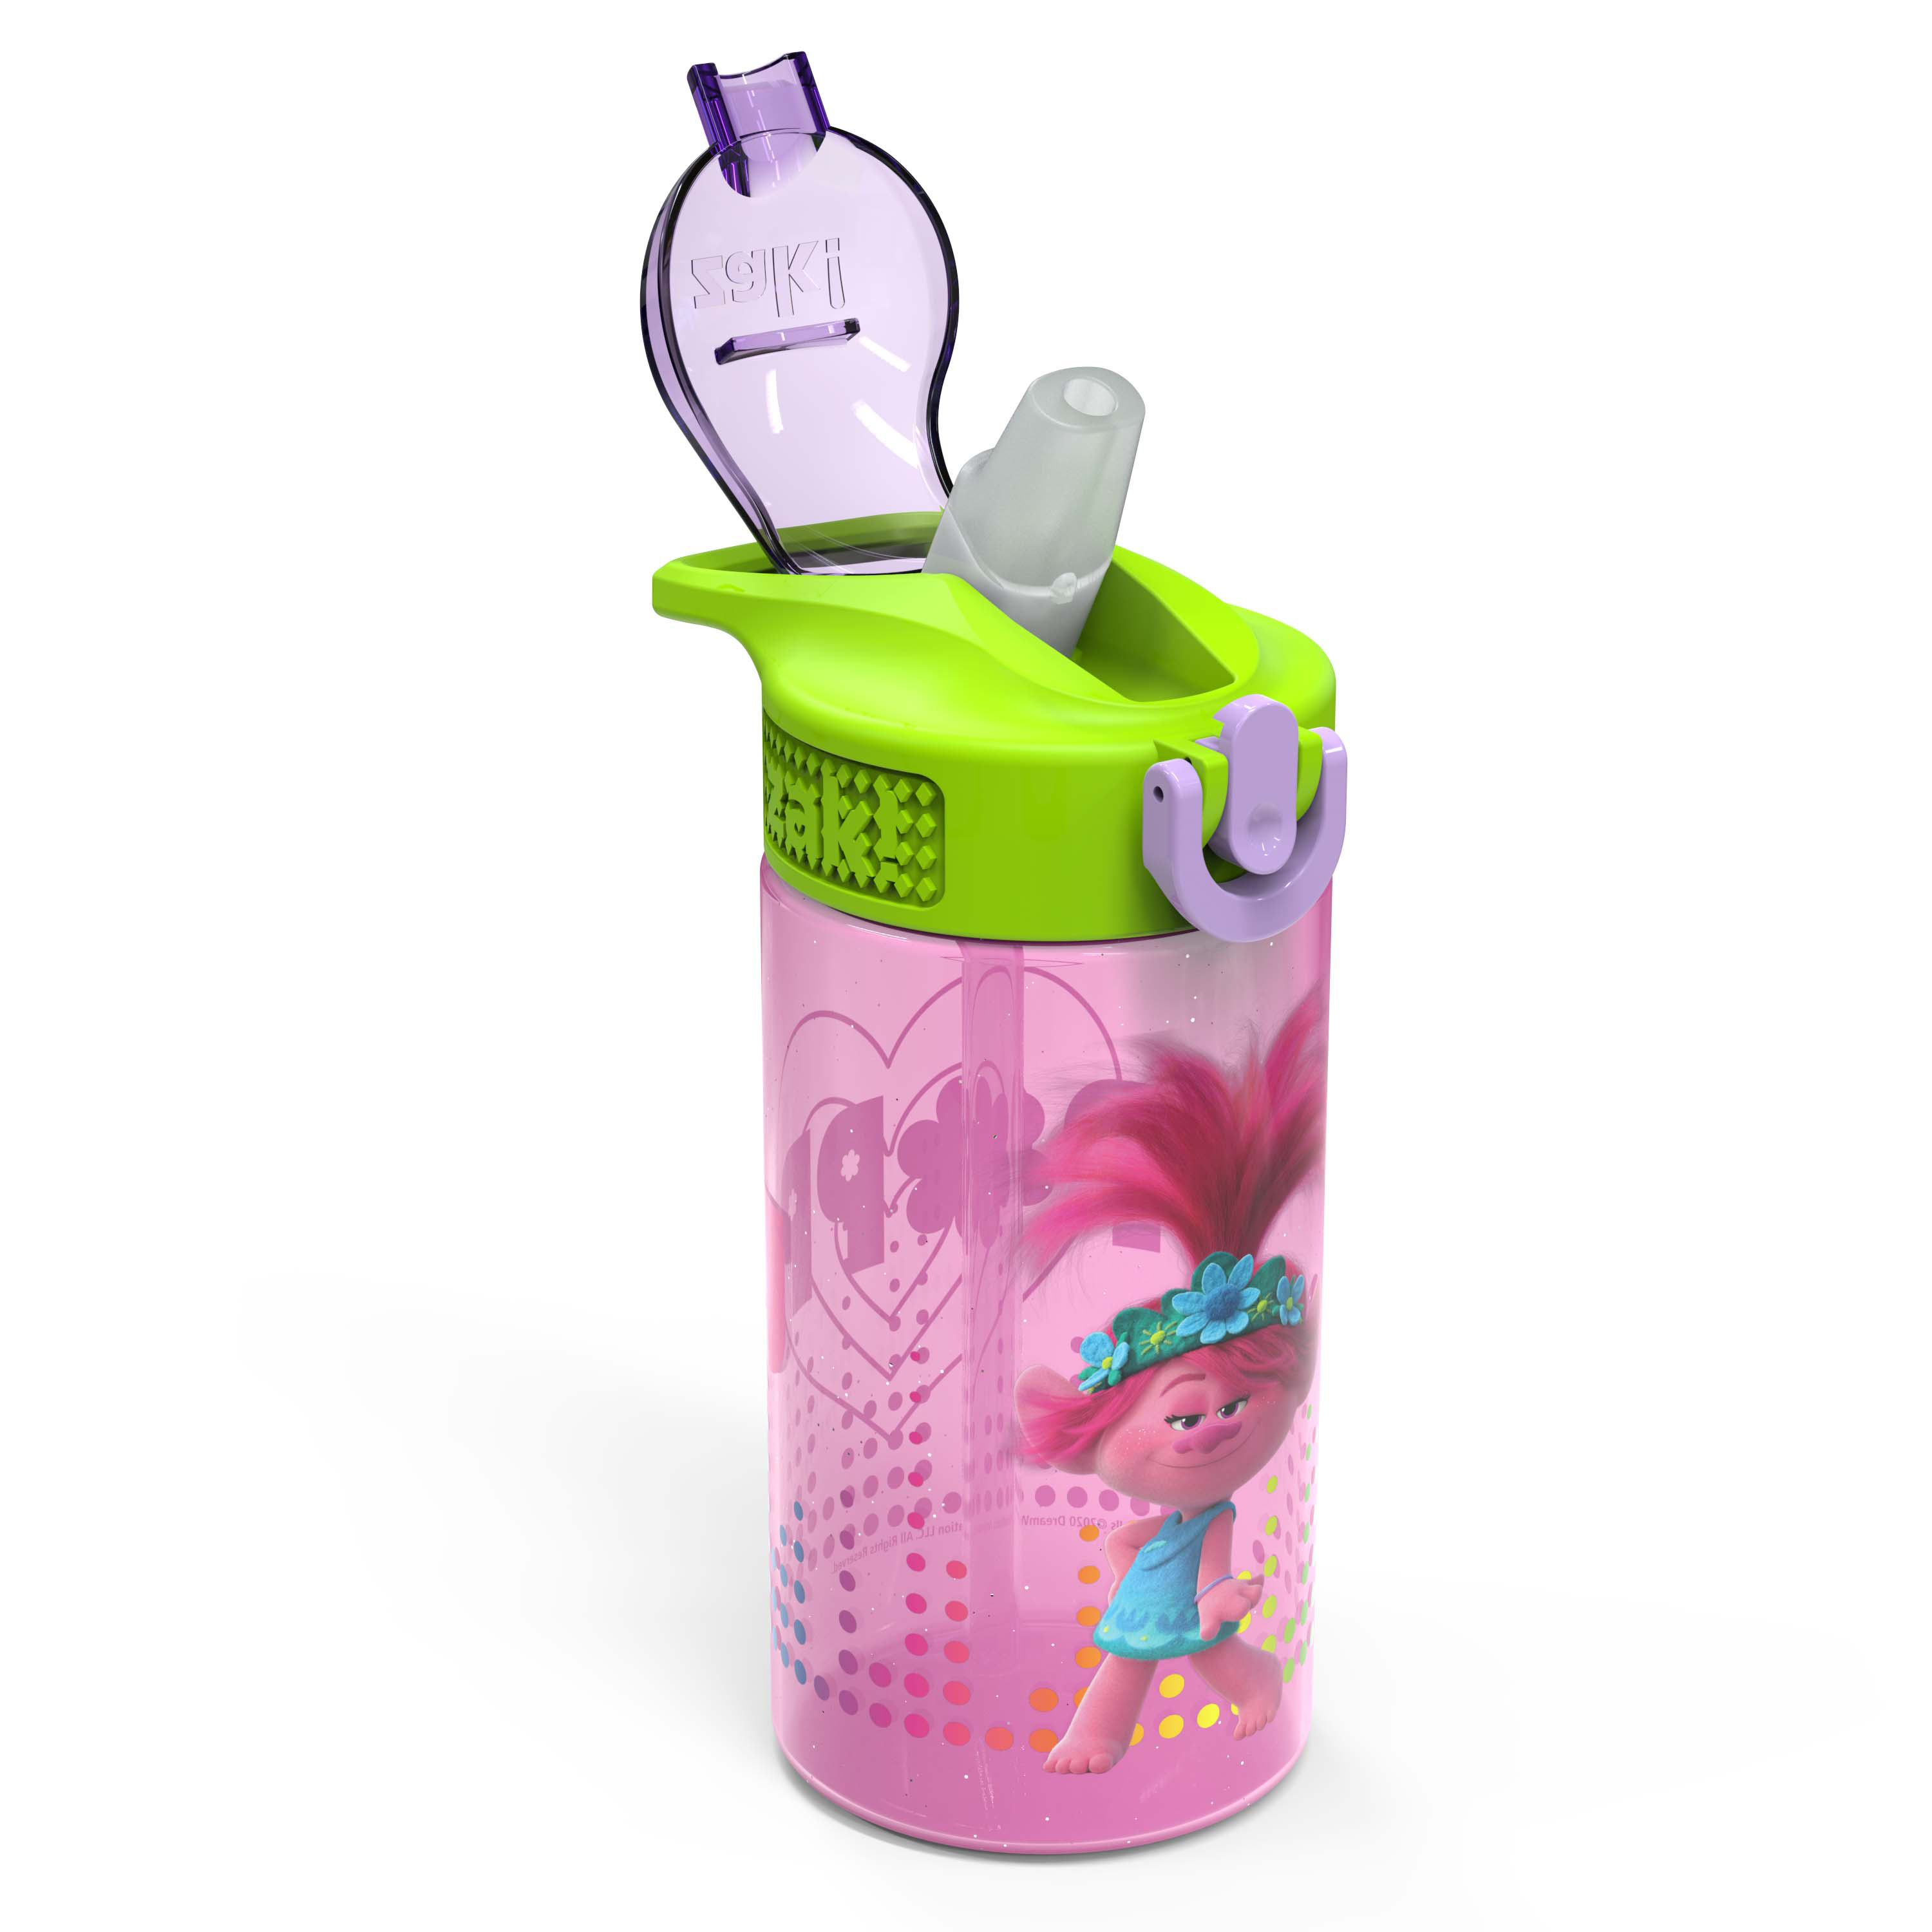 Trolls 2 Movie 16 ounce Reusable Plastic Water Bottle with Straw, Poppy, 2-piece set slideshow image 8